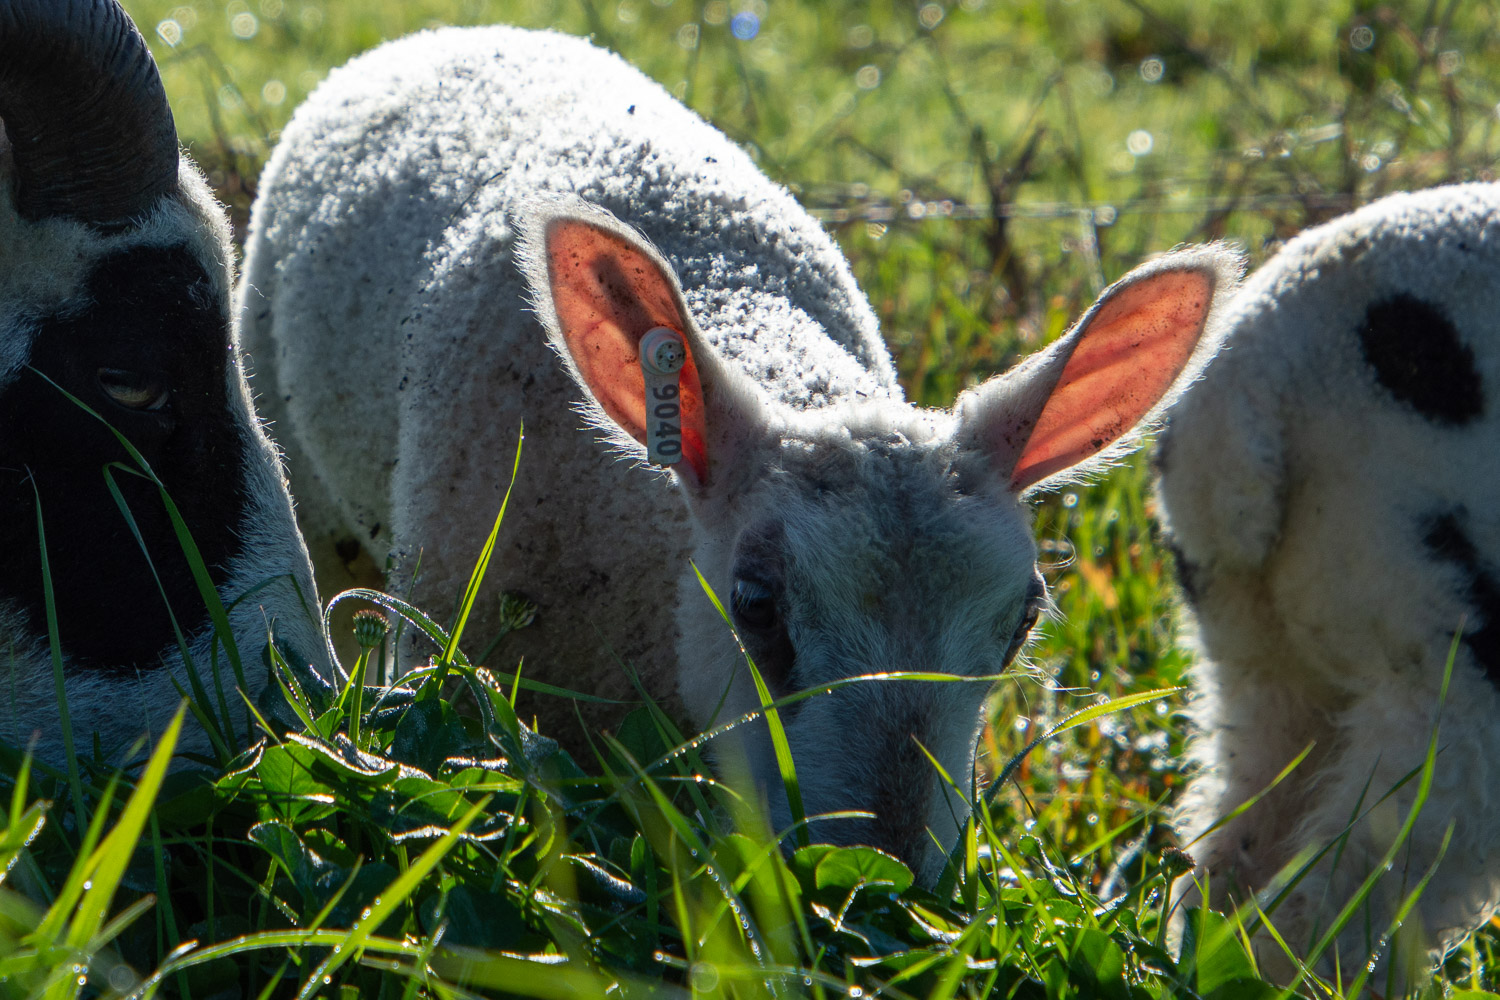 BFL-cross lamb with sunlight shining through his ears.